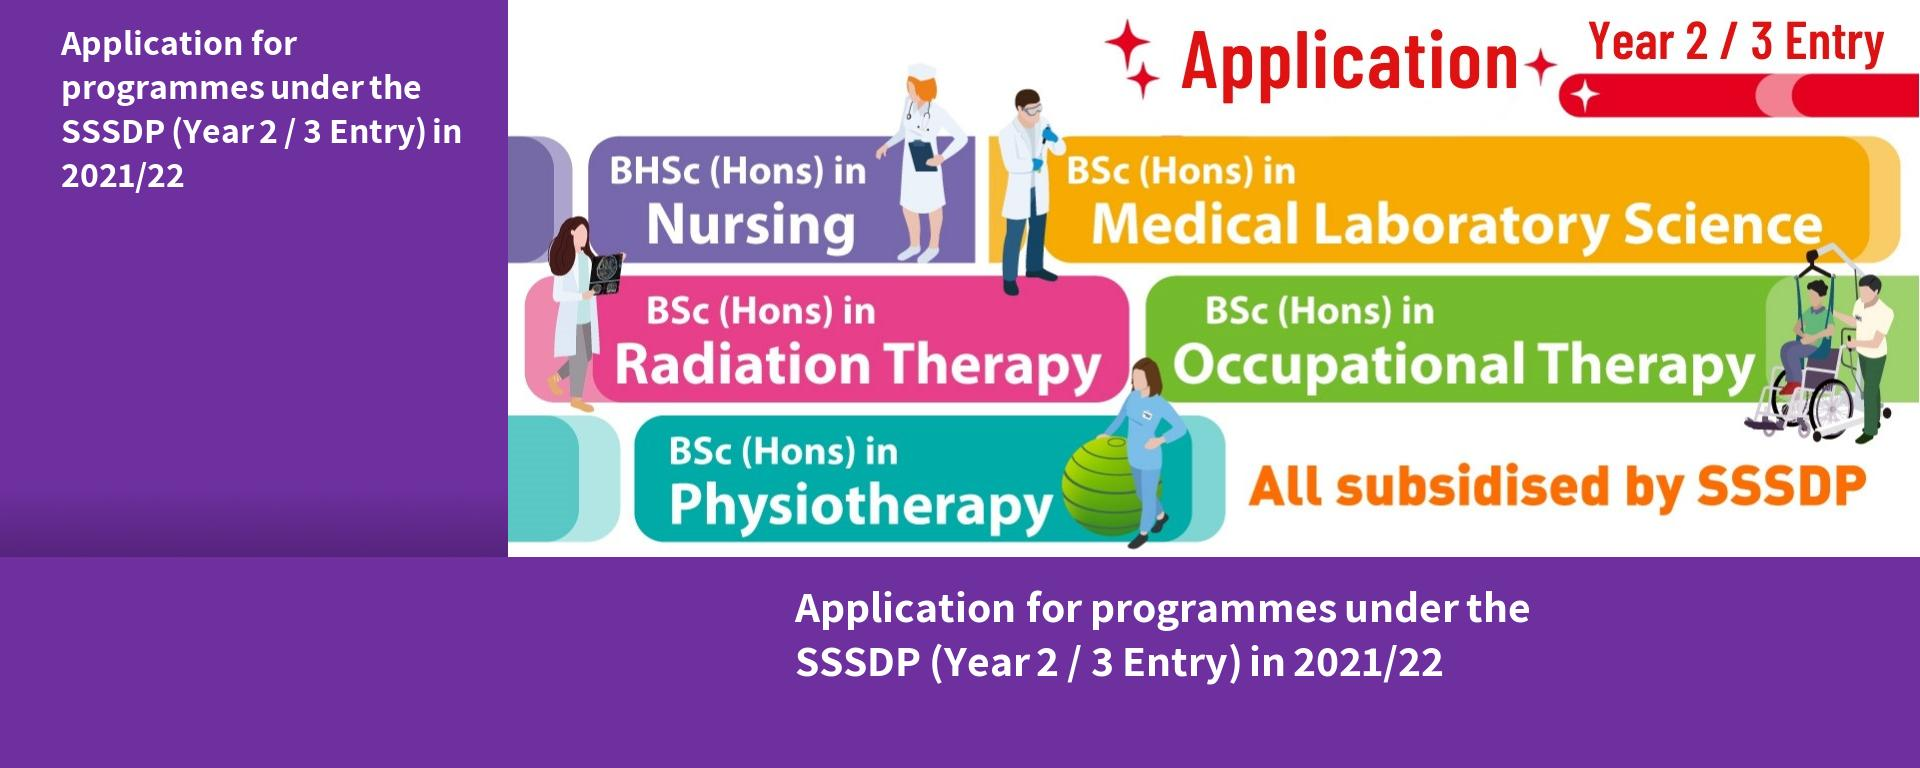 Application for programmes under the SSSDP (Year 2 / 3 Entry) in 2021/22